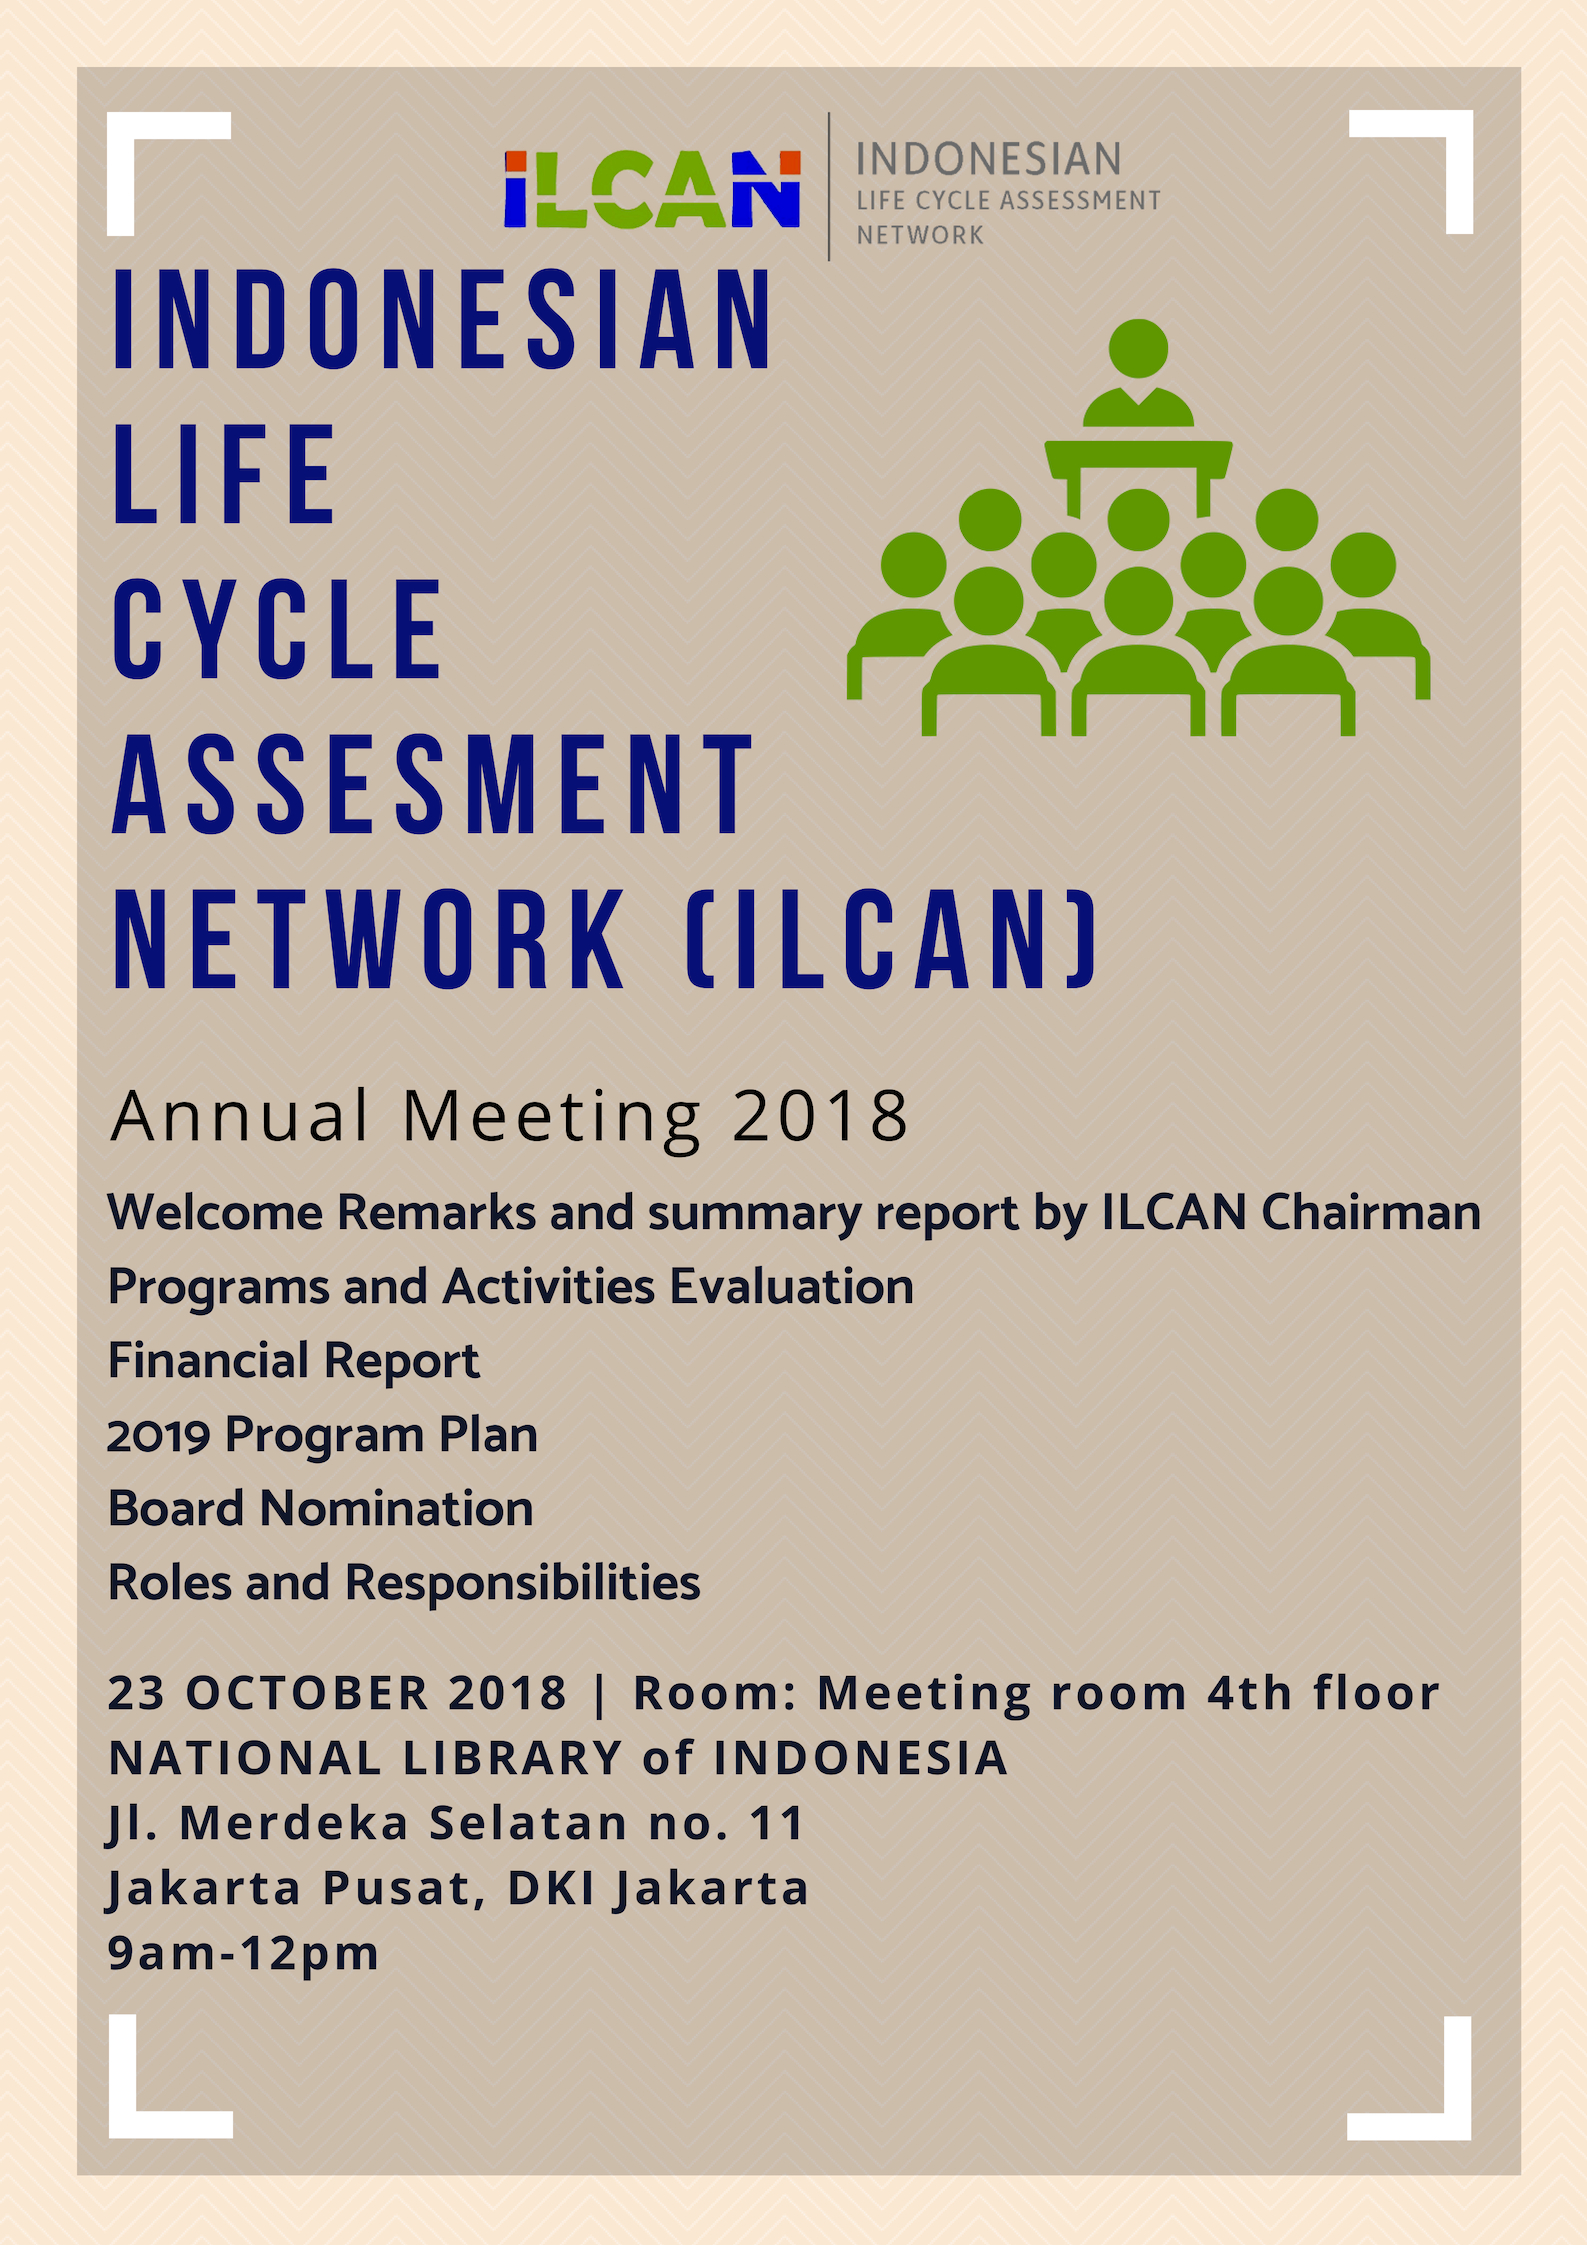 Special Events Icsolca Universitas Indonesia Biosimapro Inline With Ilcans Mission To Develop Capacity Building Ilcan And Fslci Hosted 2018 Event